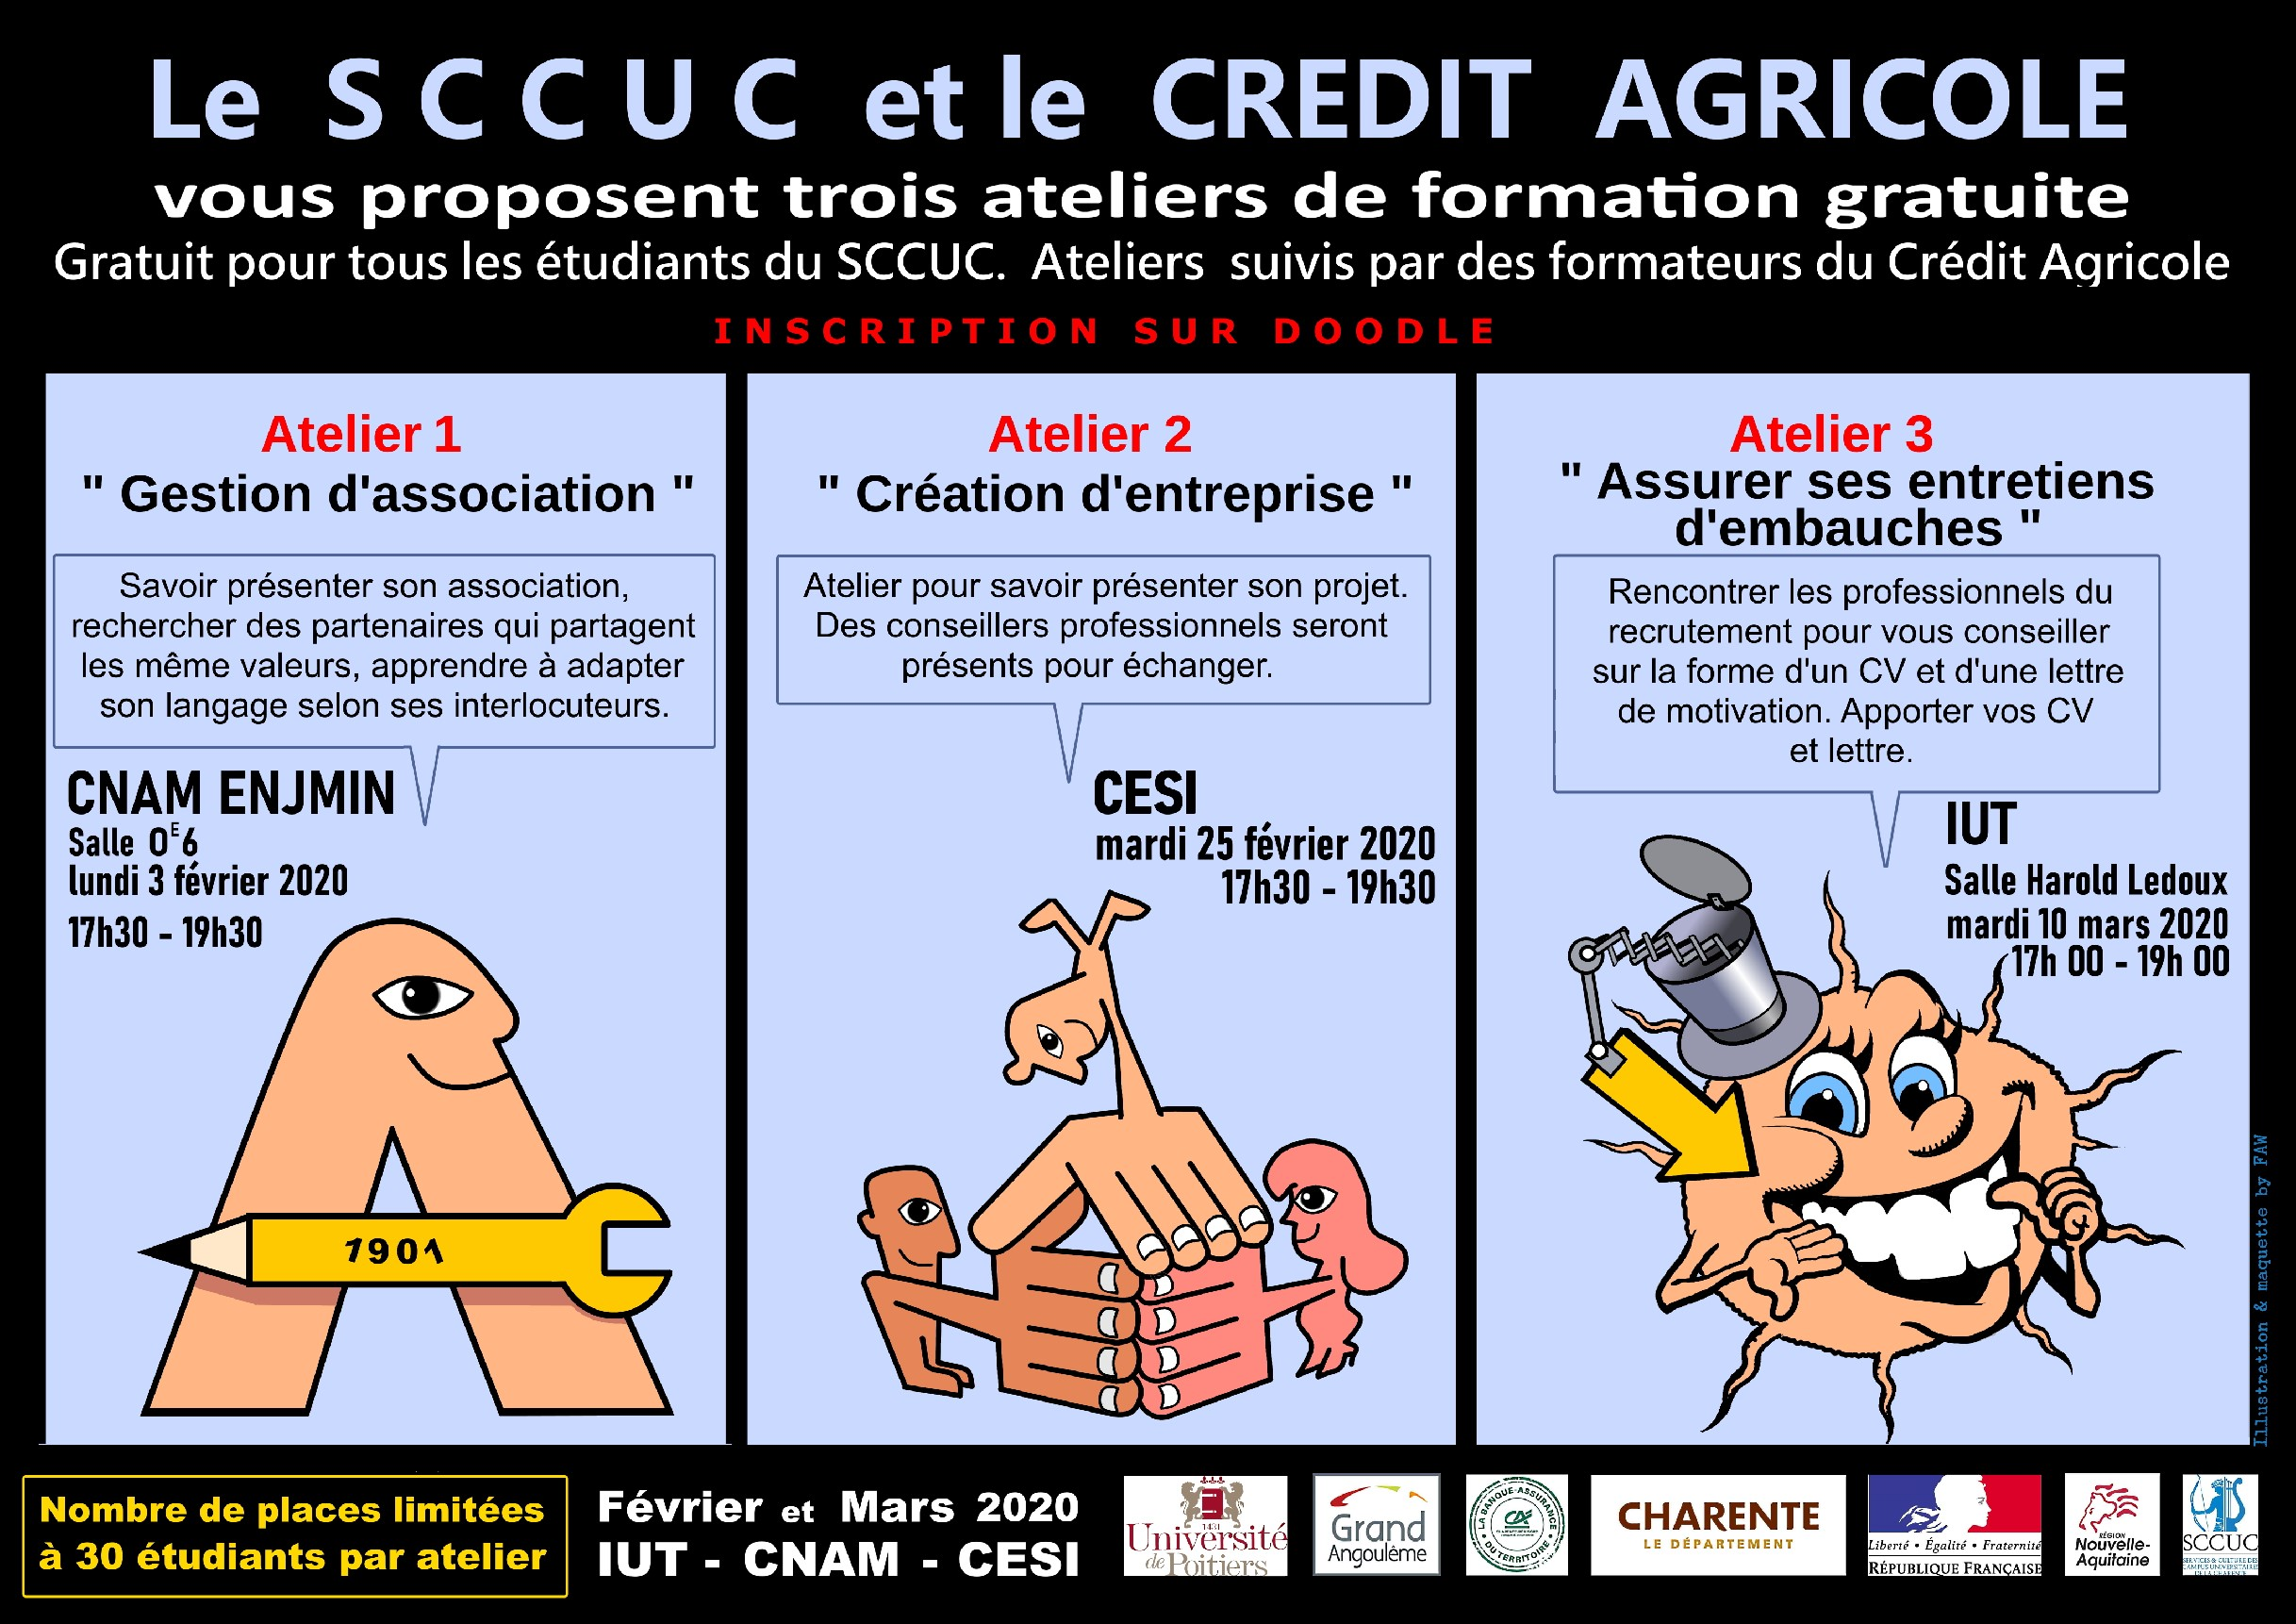 AFFICHE SCUC  3 ateliers formation.jpg